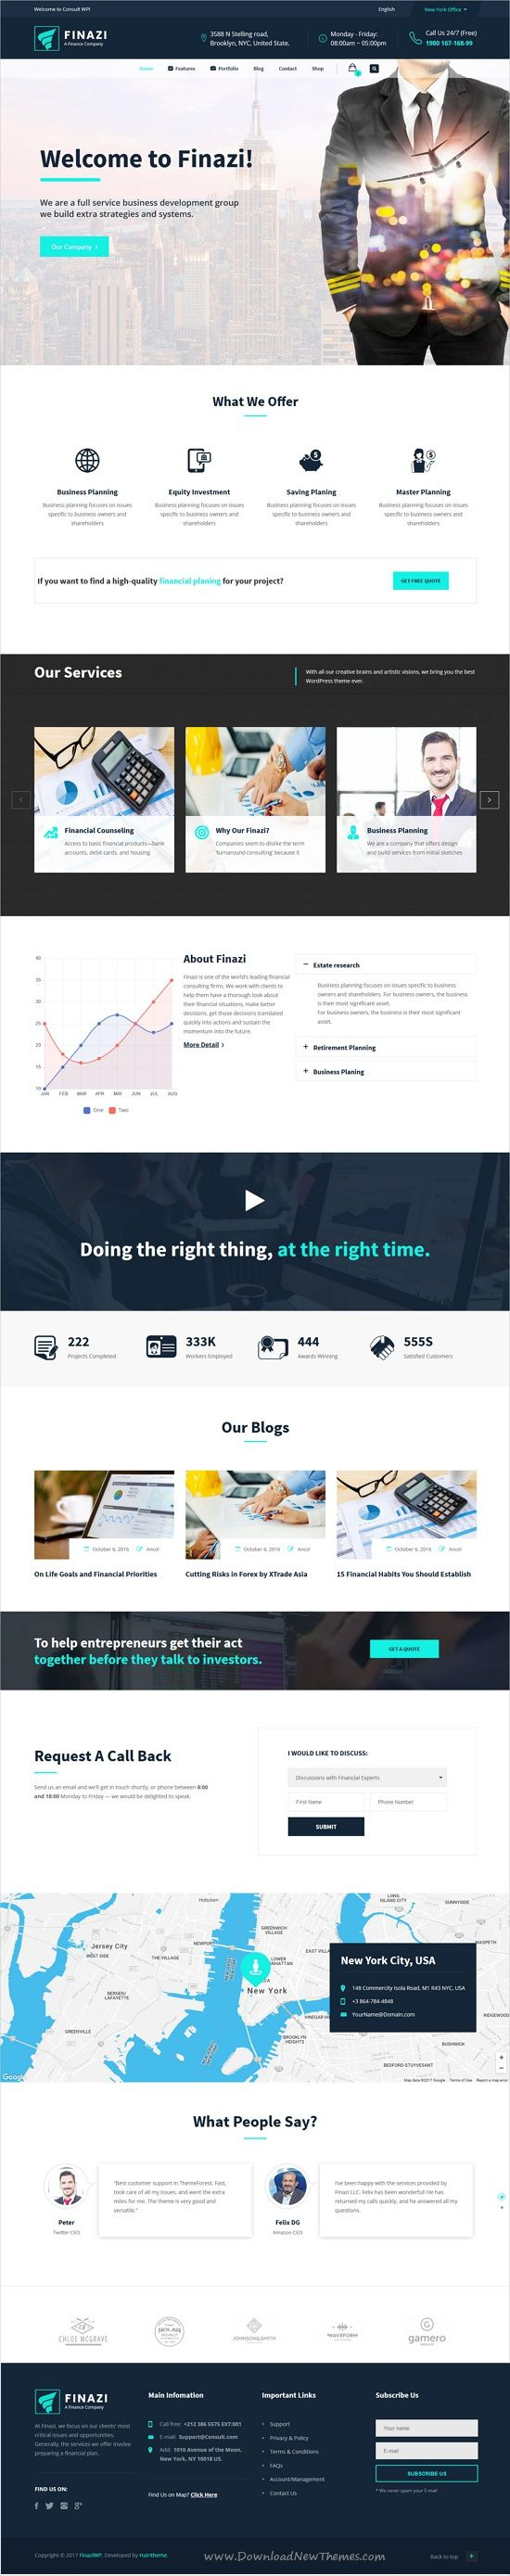 Finazi is a wonderful 8in1 responsive #WordPress theme for #webdev business and #finance websites download now➩ https://themeforest.net/item/finazi-business-finance-wordpress-theme/19174276?ref=Datasata